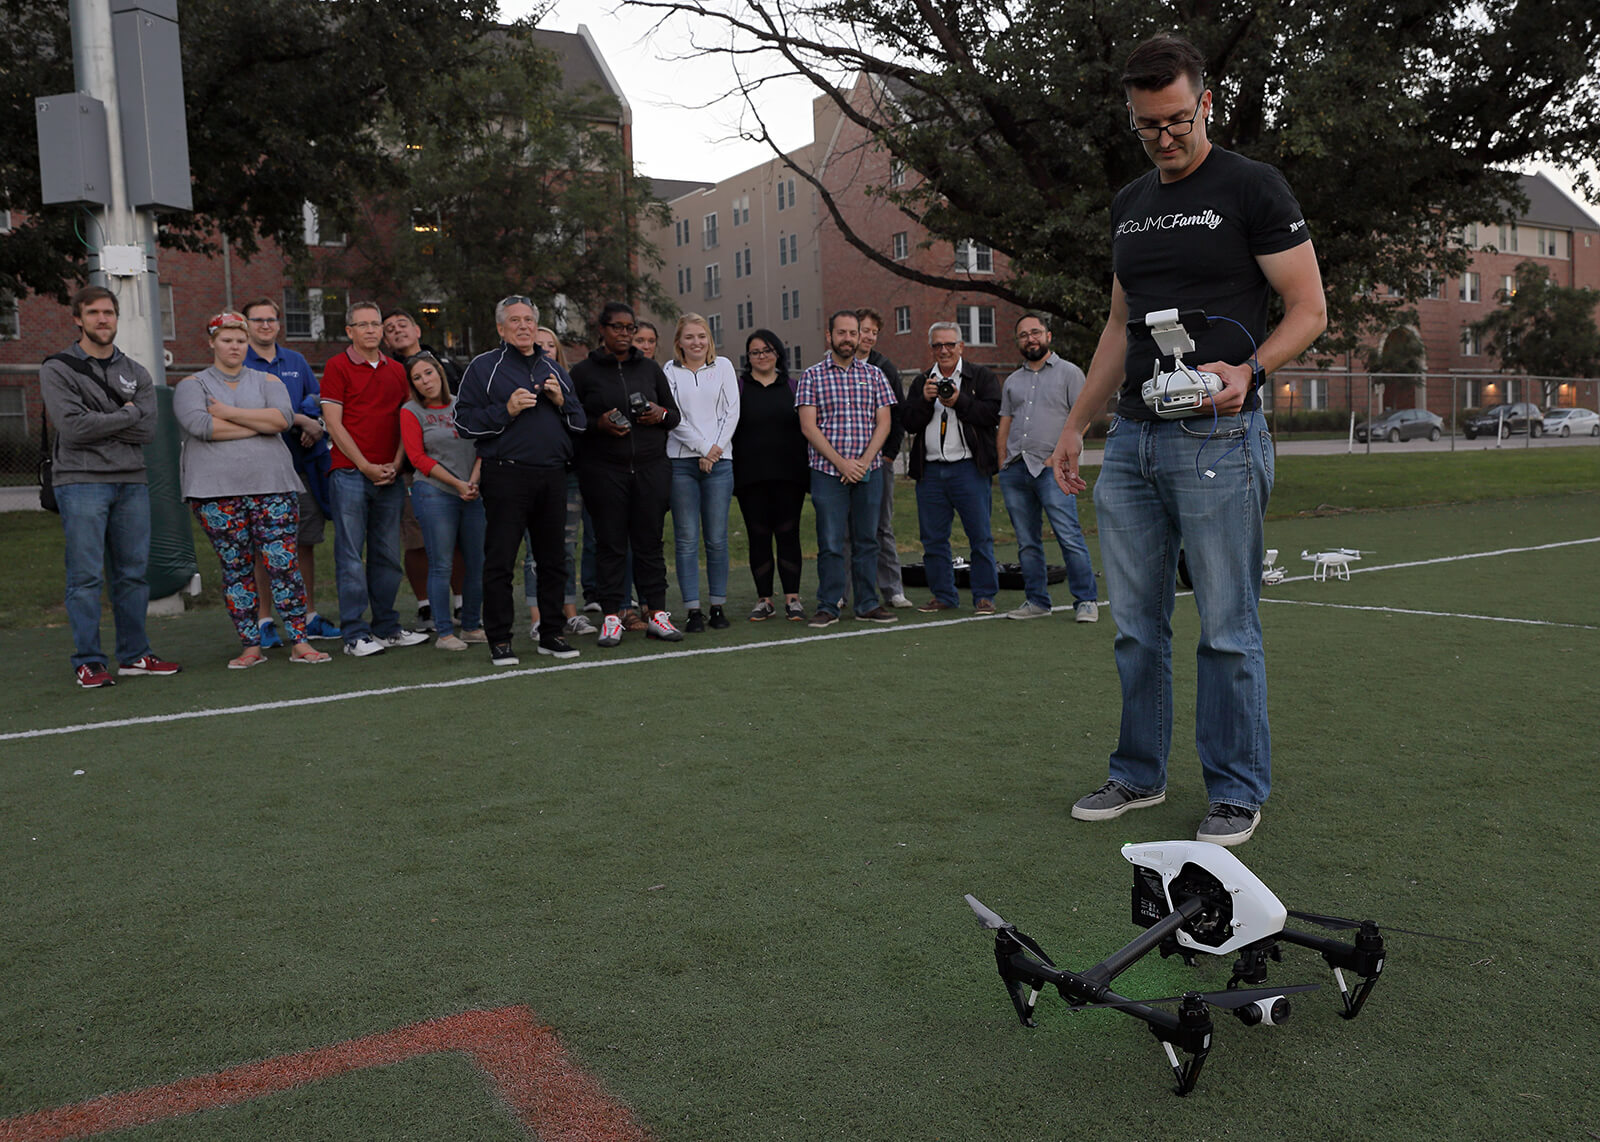 Students look on in the background as Waite look down on a drone and controls in foreground.